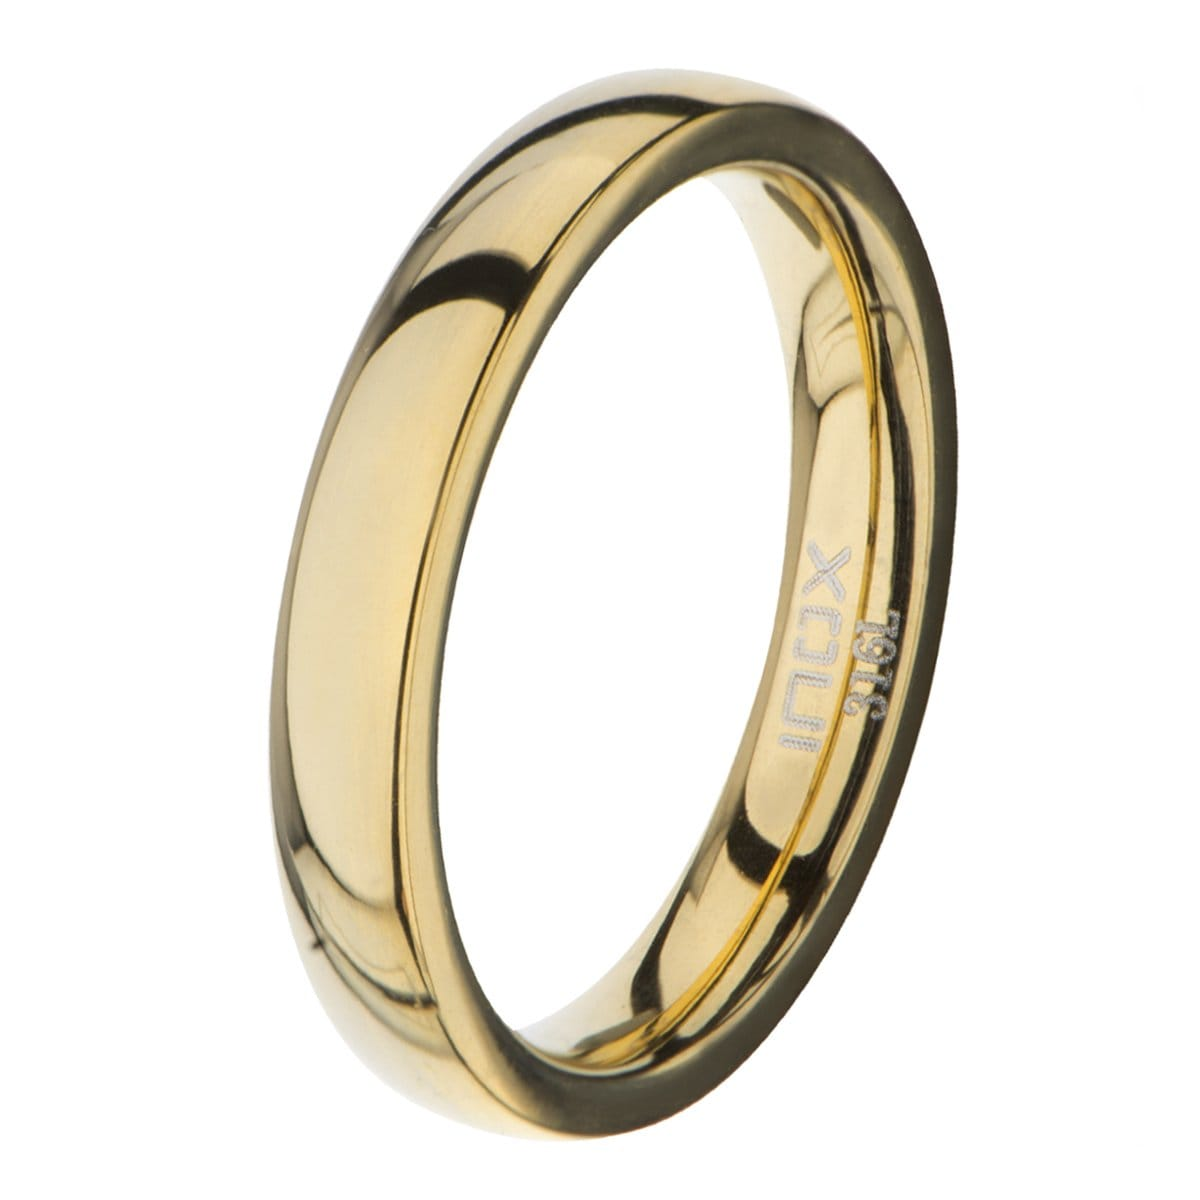 Gold Stainless Steel Polished 3mm Band Rings